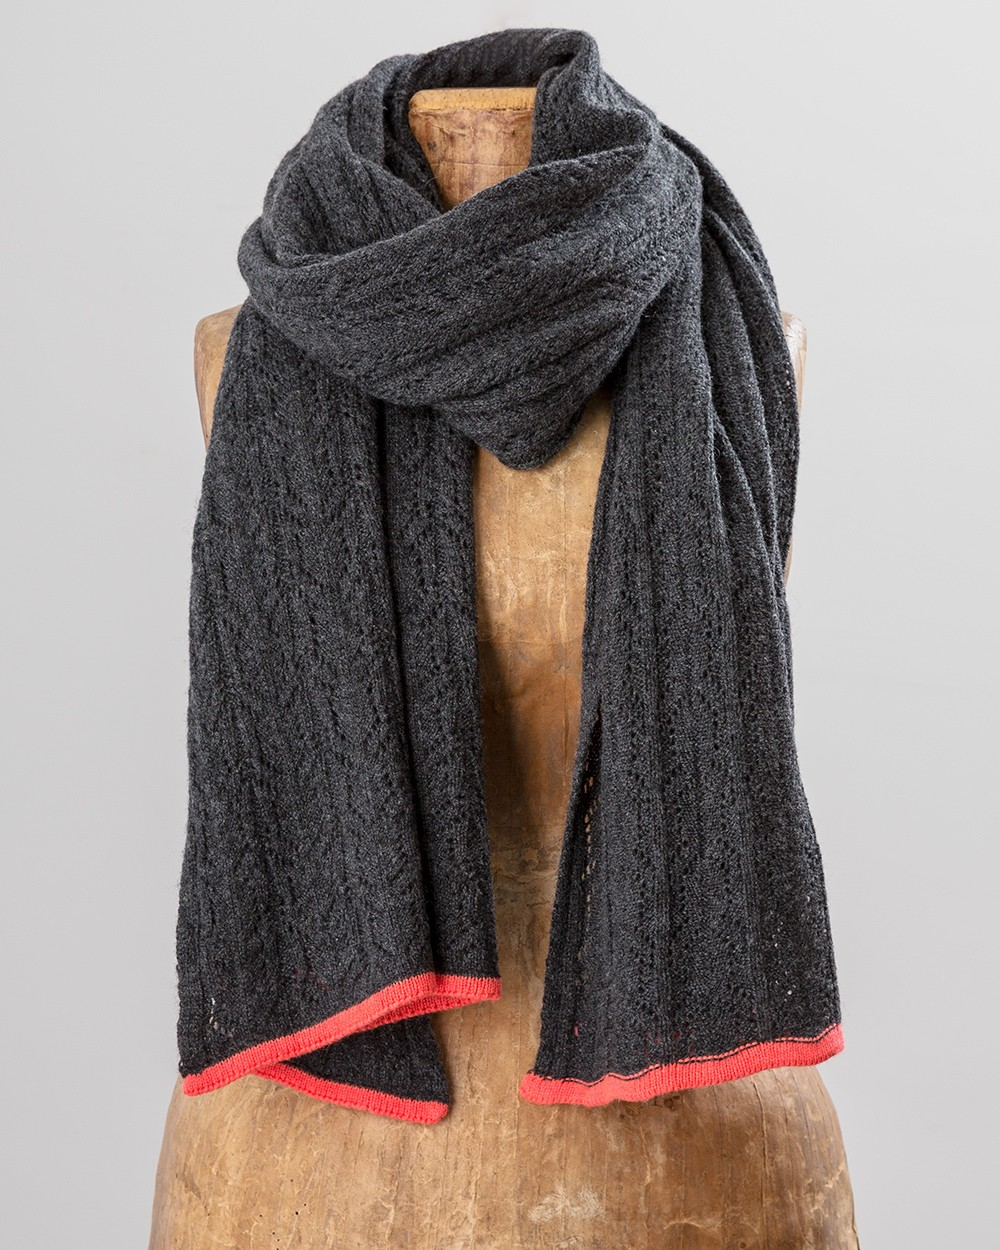 Neon Trim Scarf in Grey and Orange